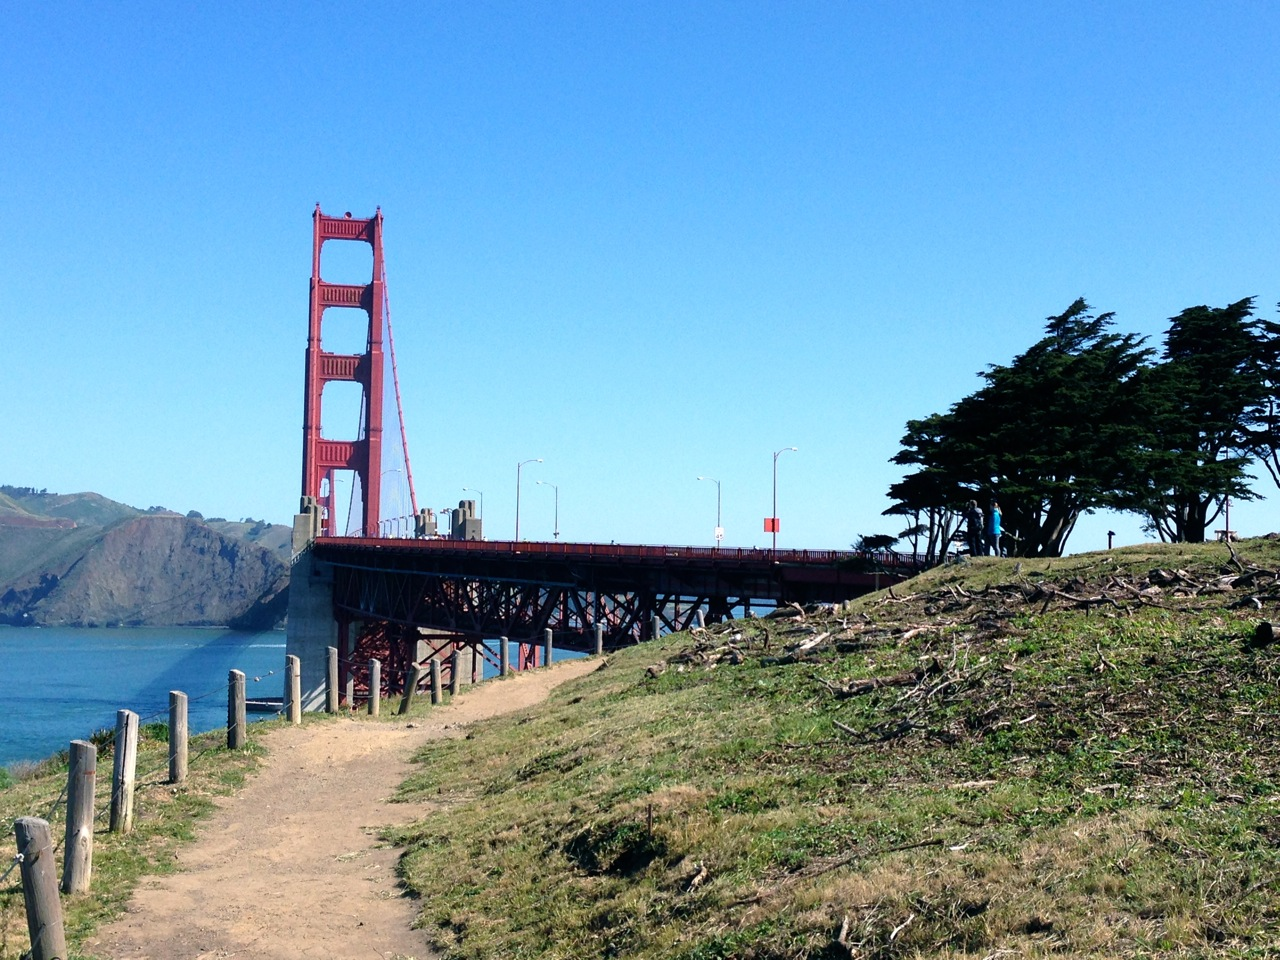 Trail on the west side of the GGB